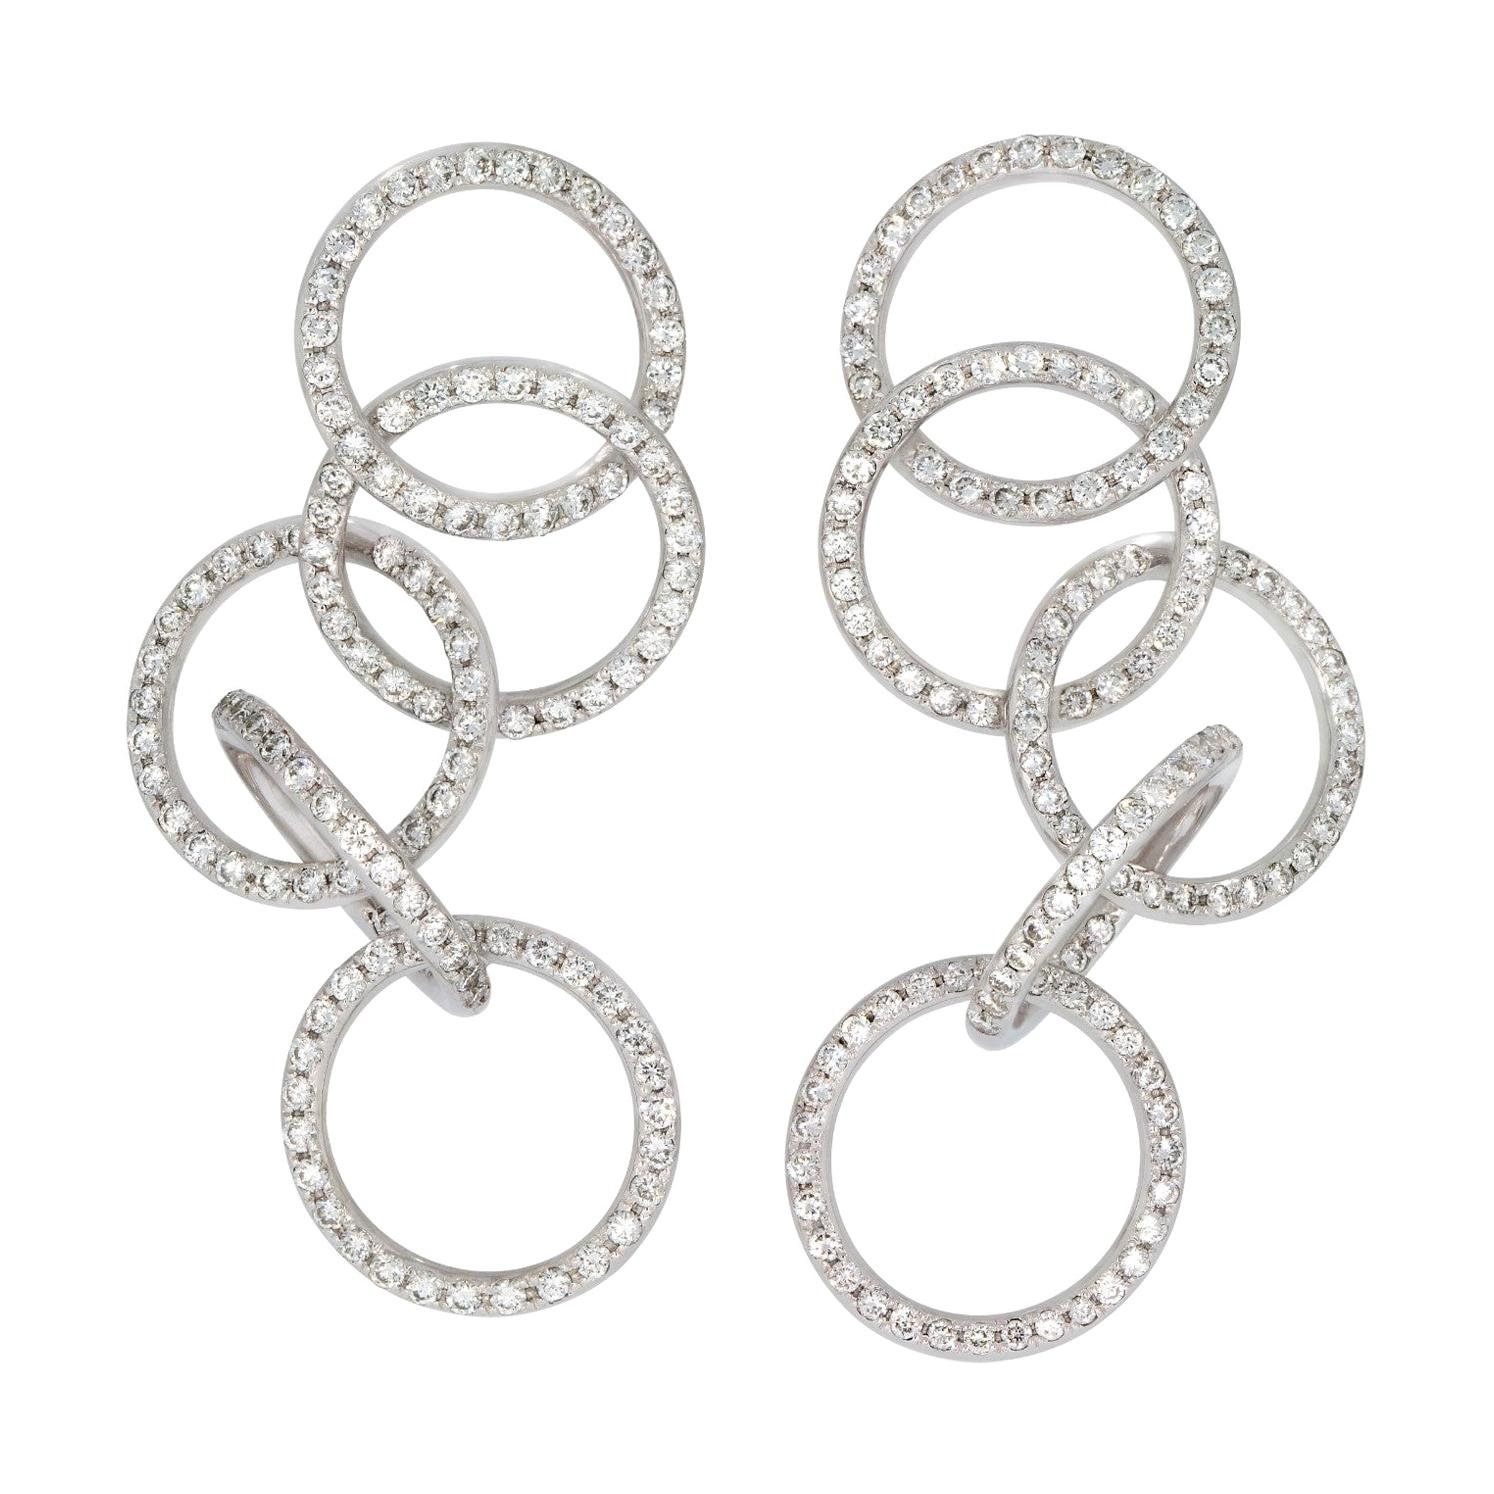 Rosior Contemporary Diamond and White Gold Dangle Earrings